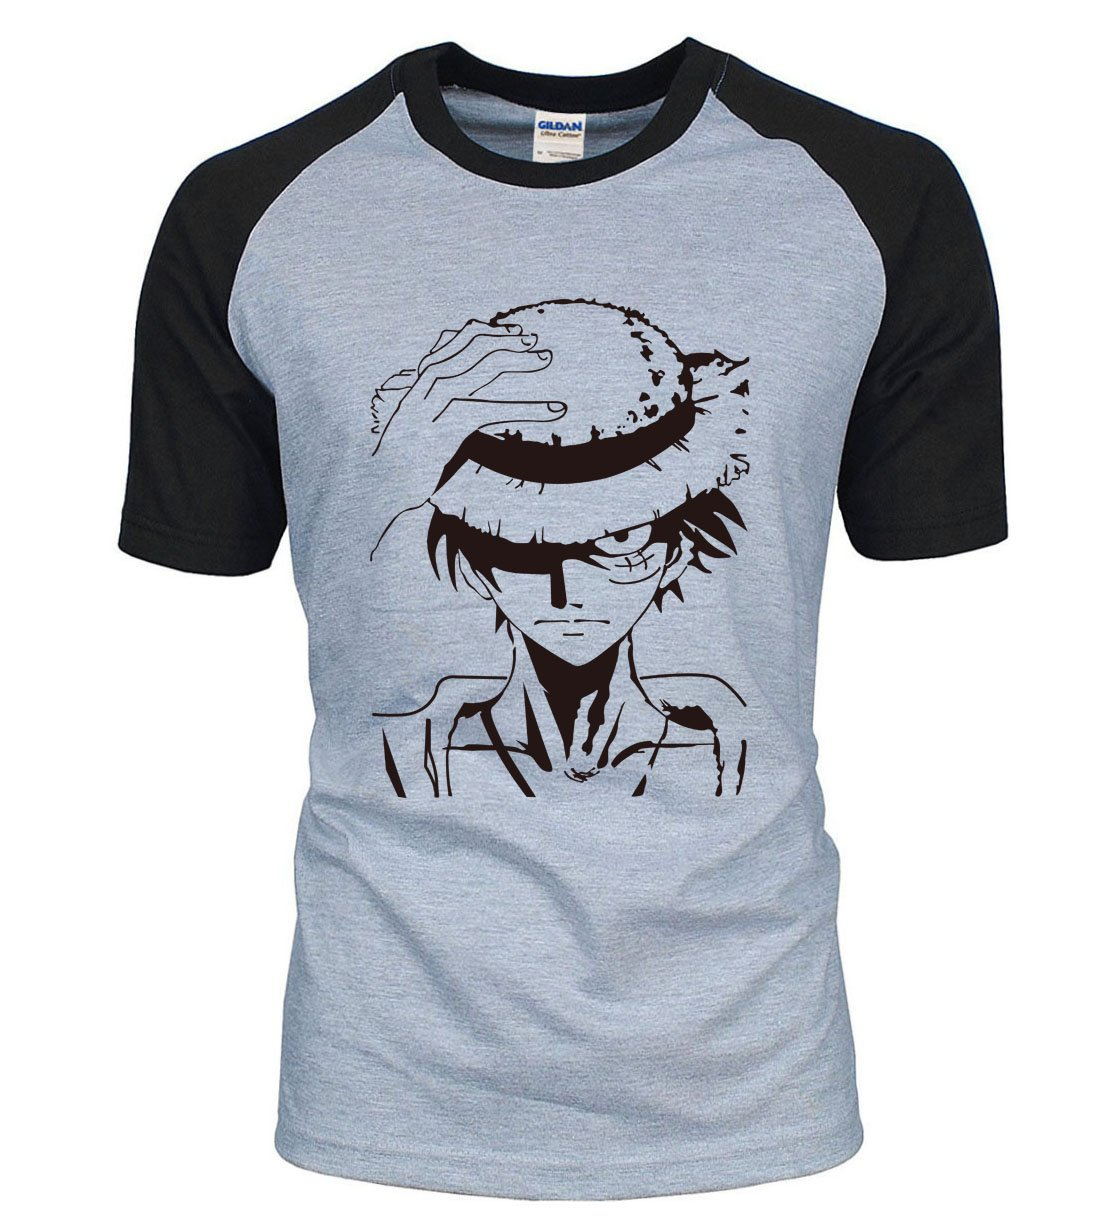 One Piece Luffy Straw Hat T-Shirt ANM0608 Black / S Official One Piece Merch